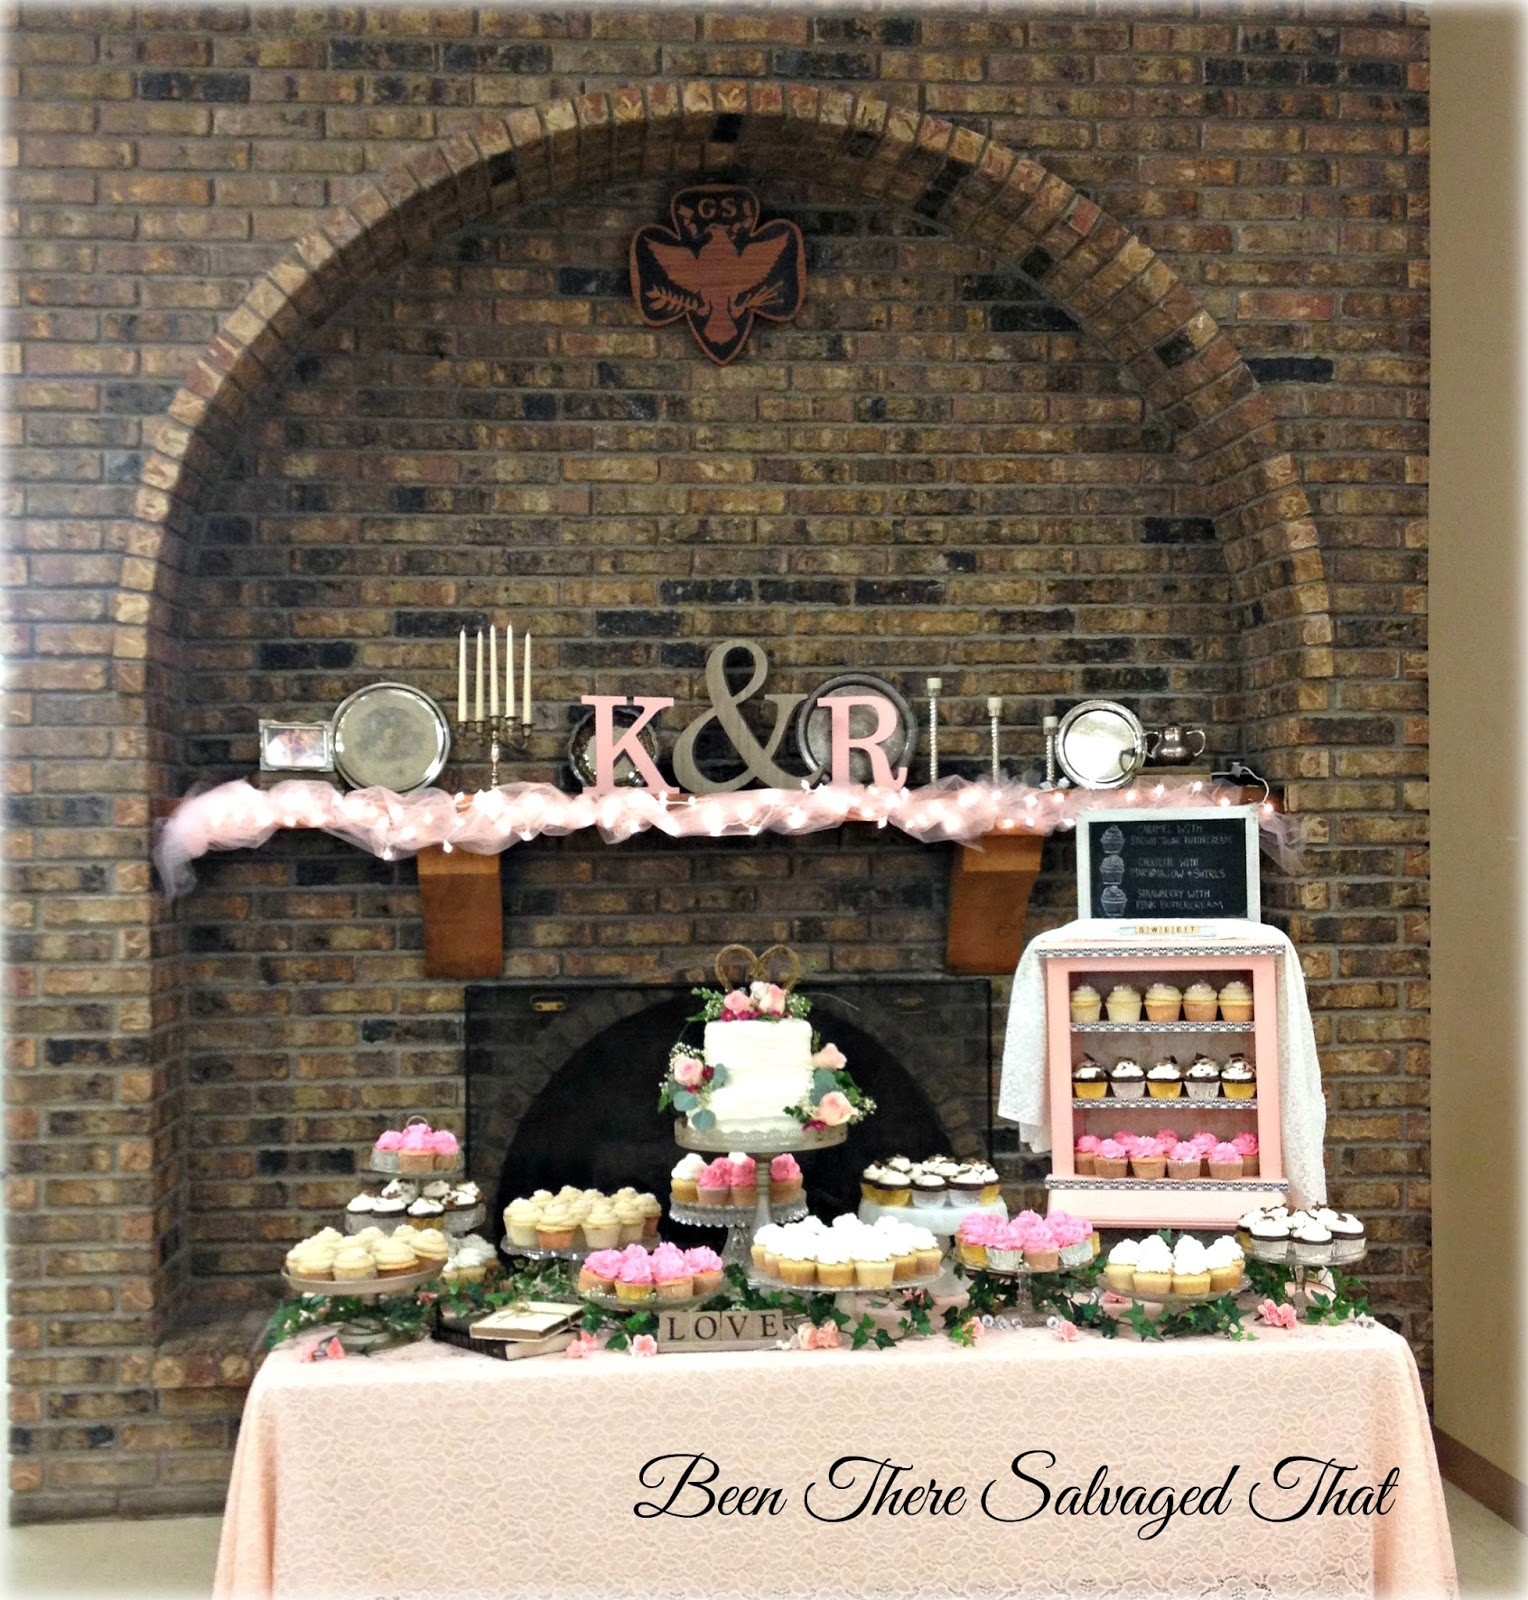 Been There Salvaged That: Wedding Cake/Cupcake Table